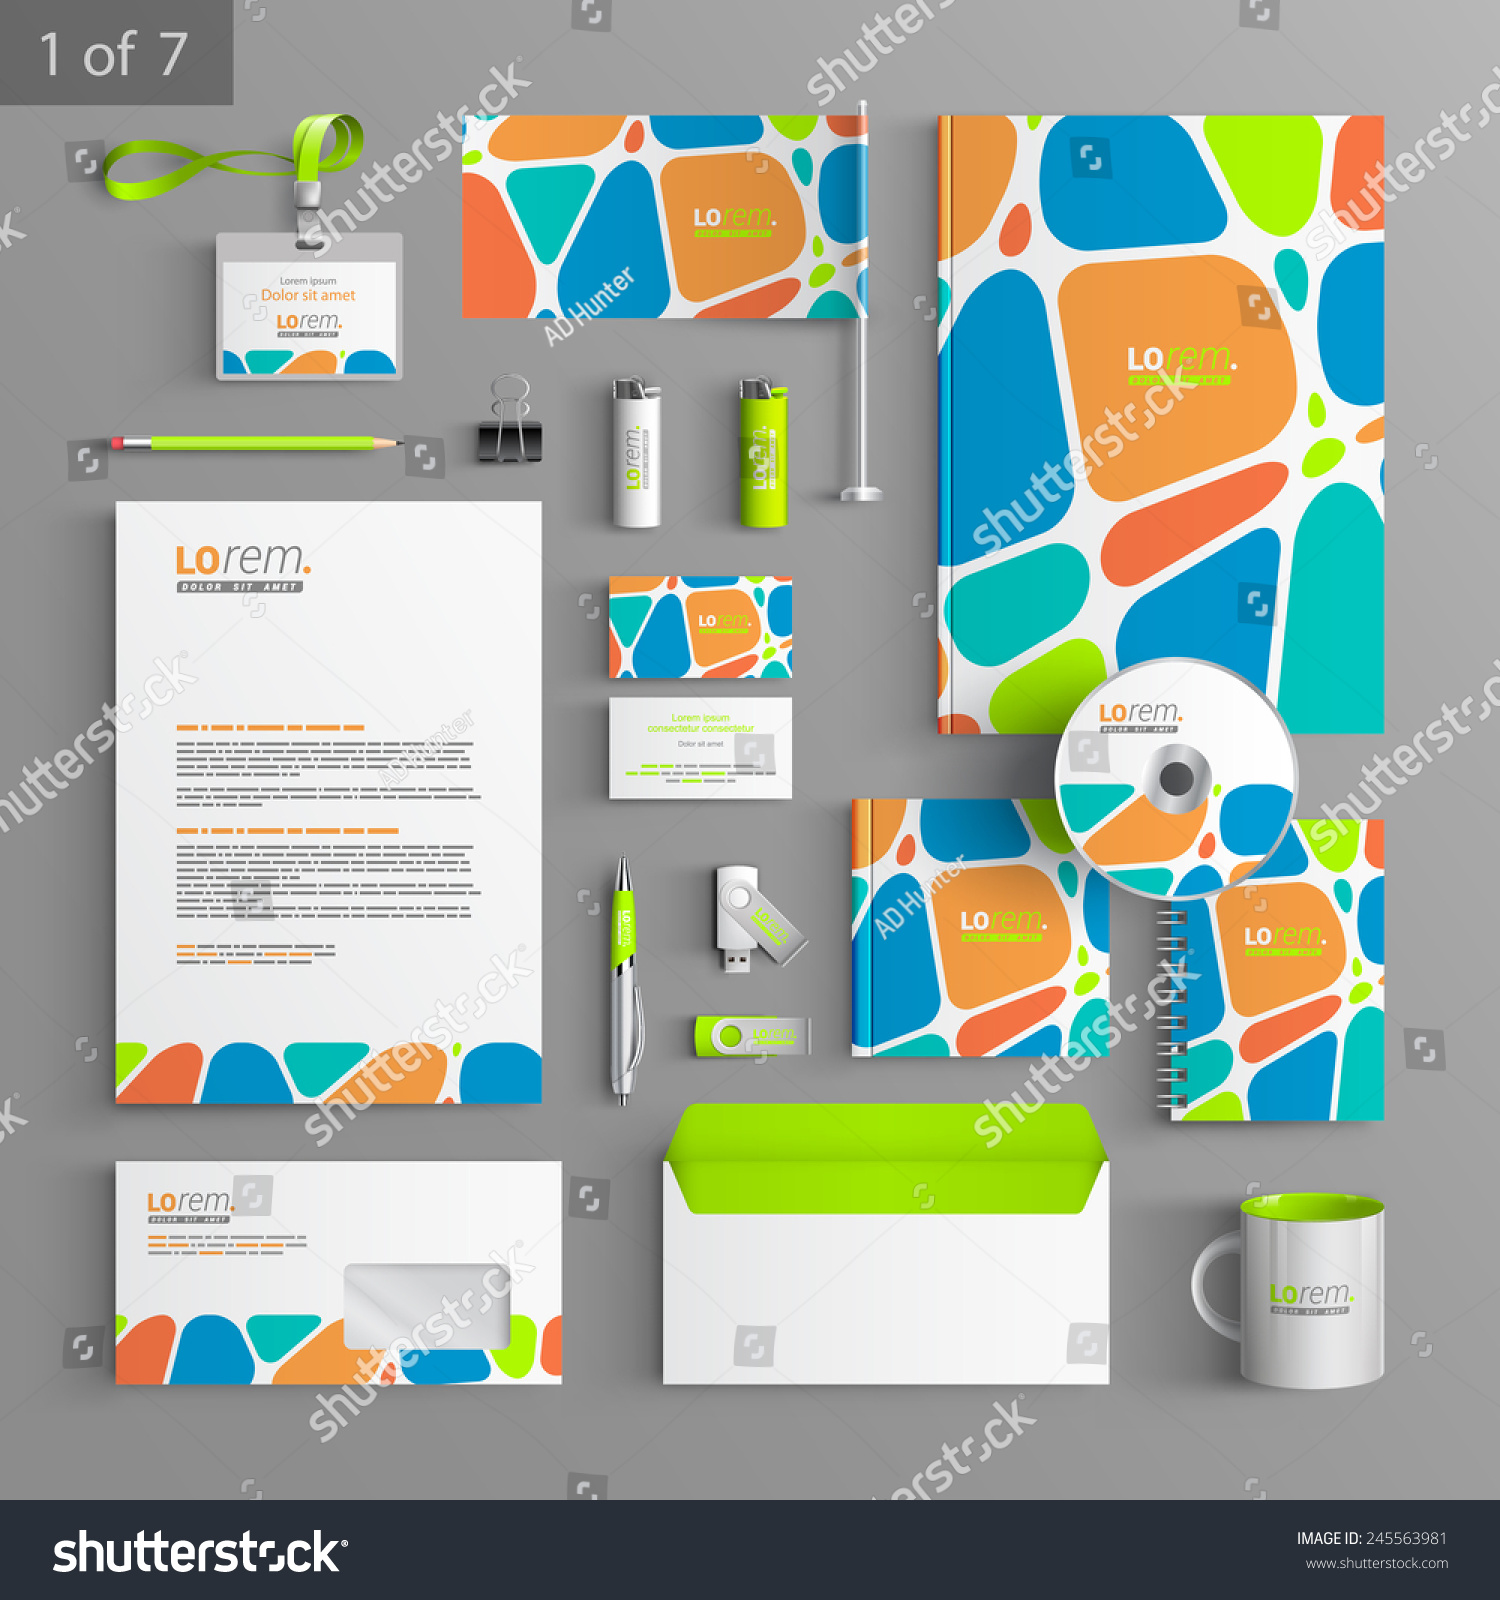 Blank Stationery And Corporate Identity Template Consist: Creative Corporate Identity Template Design Color Stock